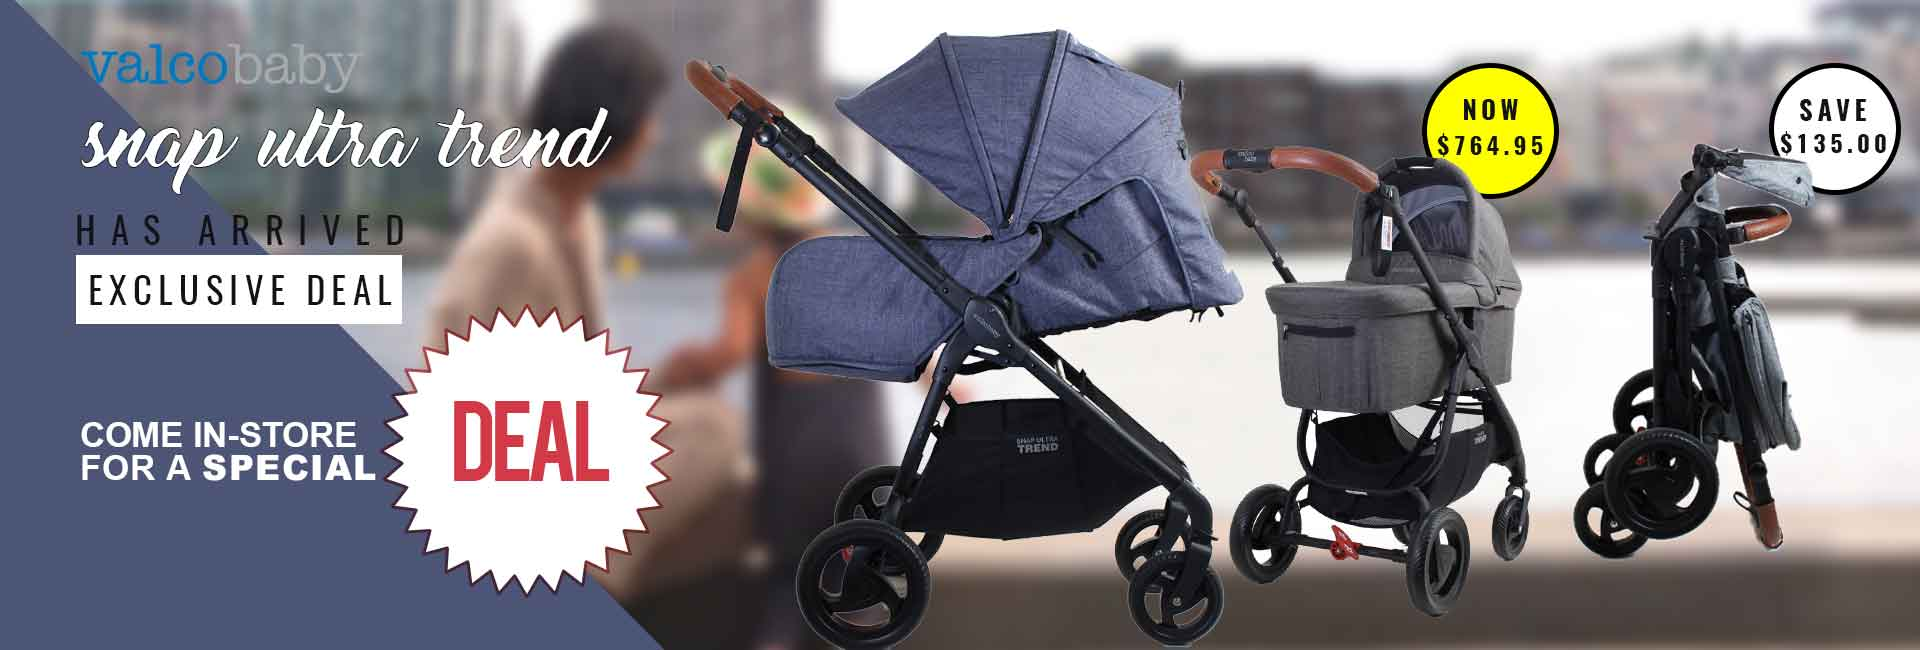 Snap Ultra Trend Exclusive Deal at Baby Barn Discounts